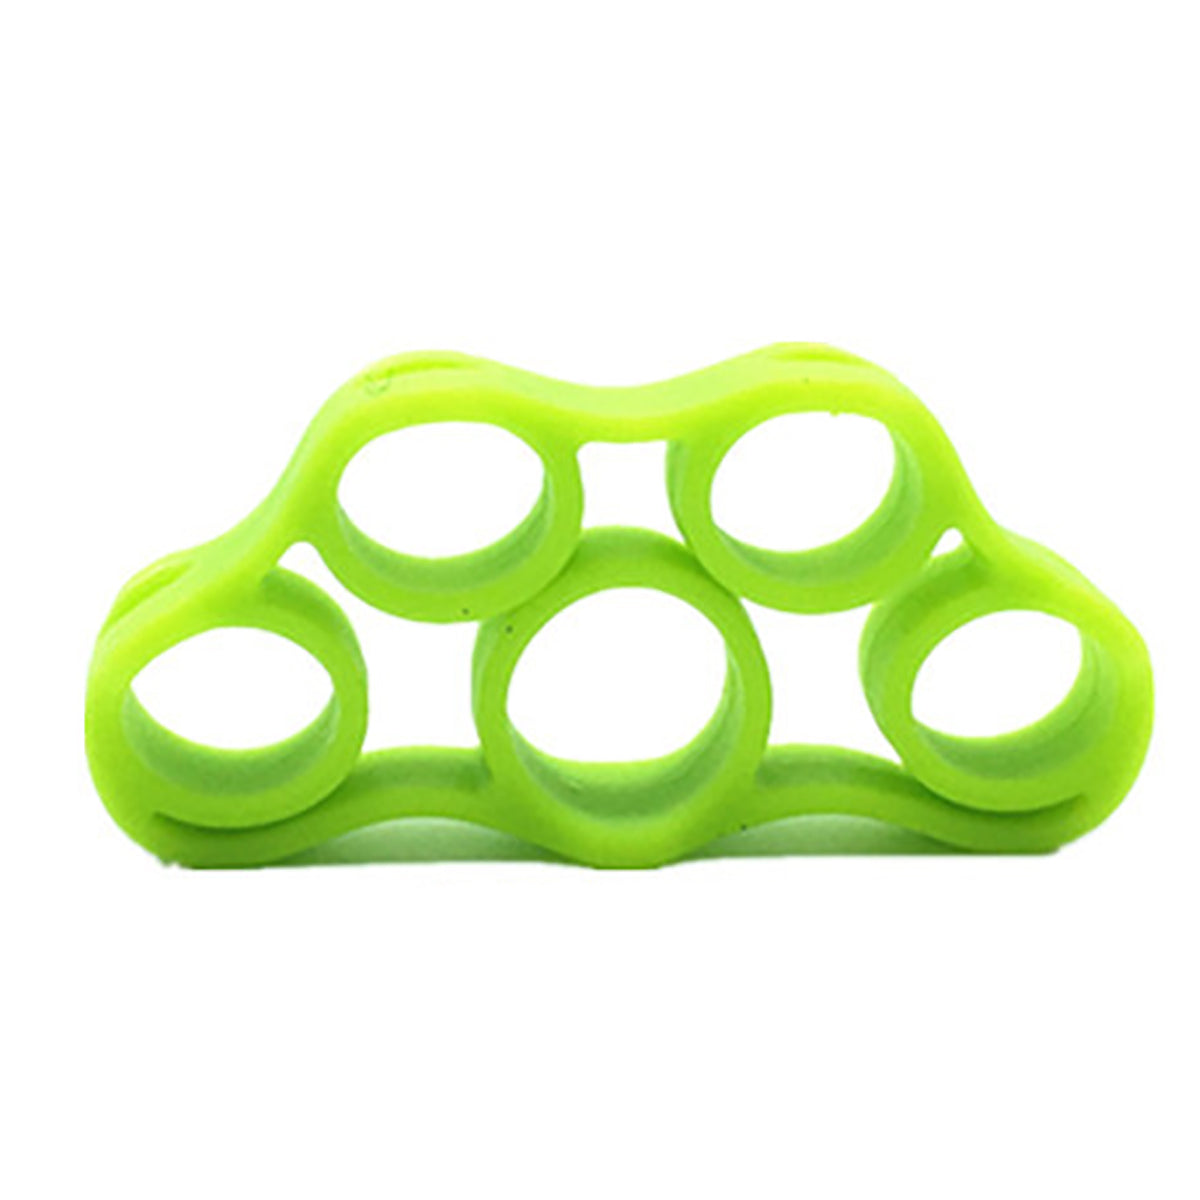 Grip Strengthener Resistance Band